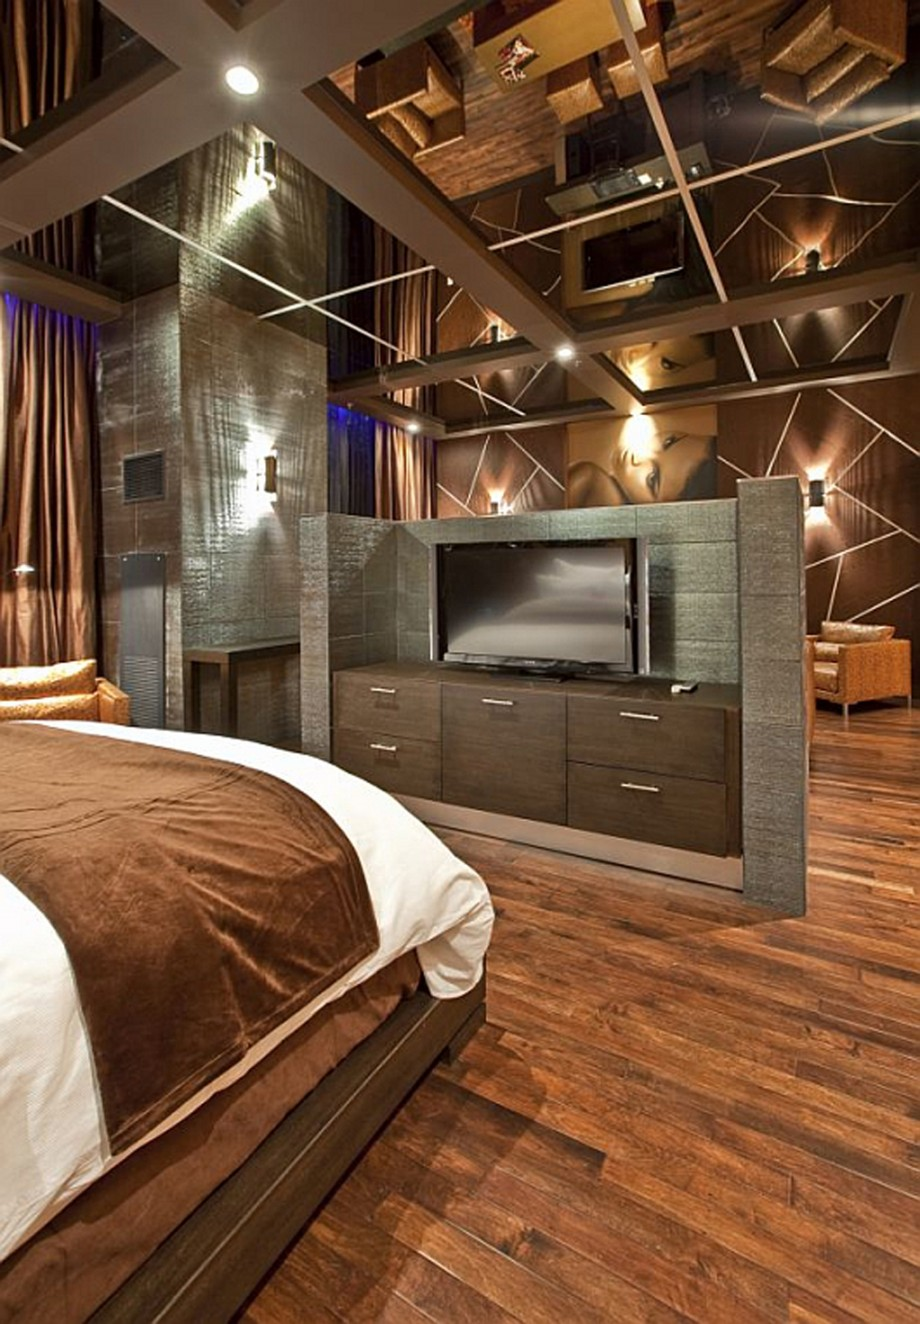 Minimalist Hotel Decorating Ideas